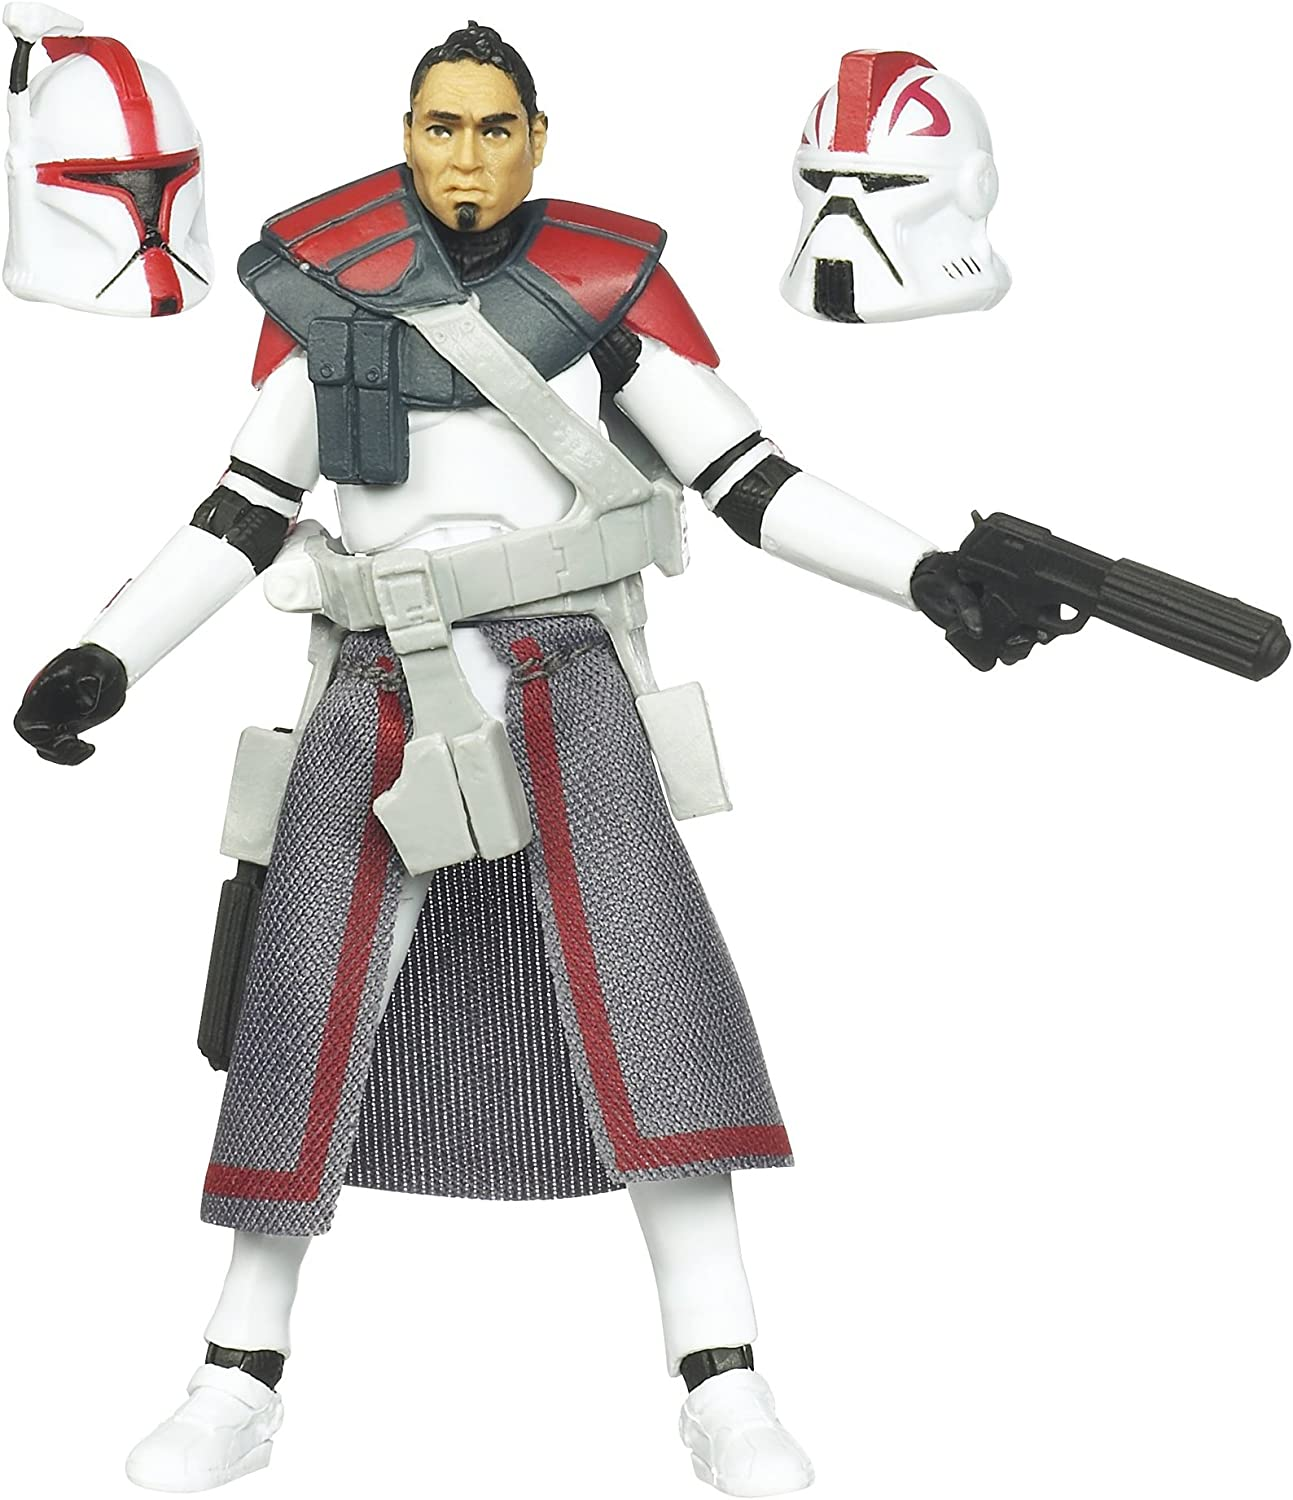 Lightsaber /& Gun Weapon for Star Wars 3.75/'/' Clone Trooper figure Accessory Toys